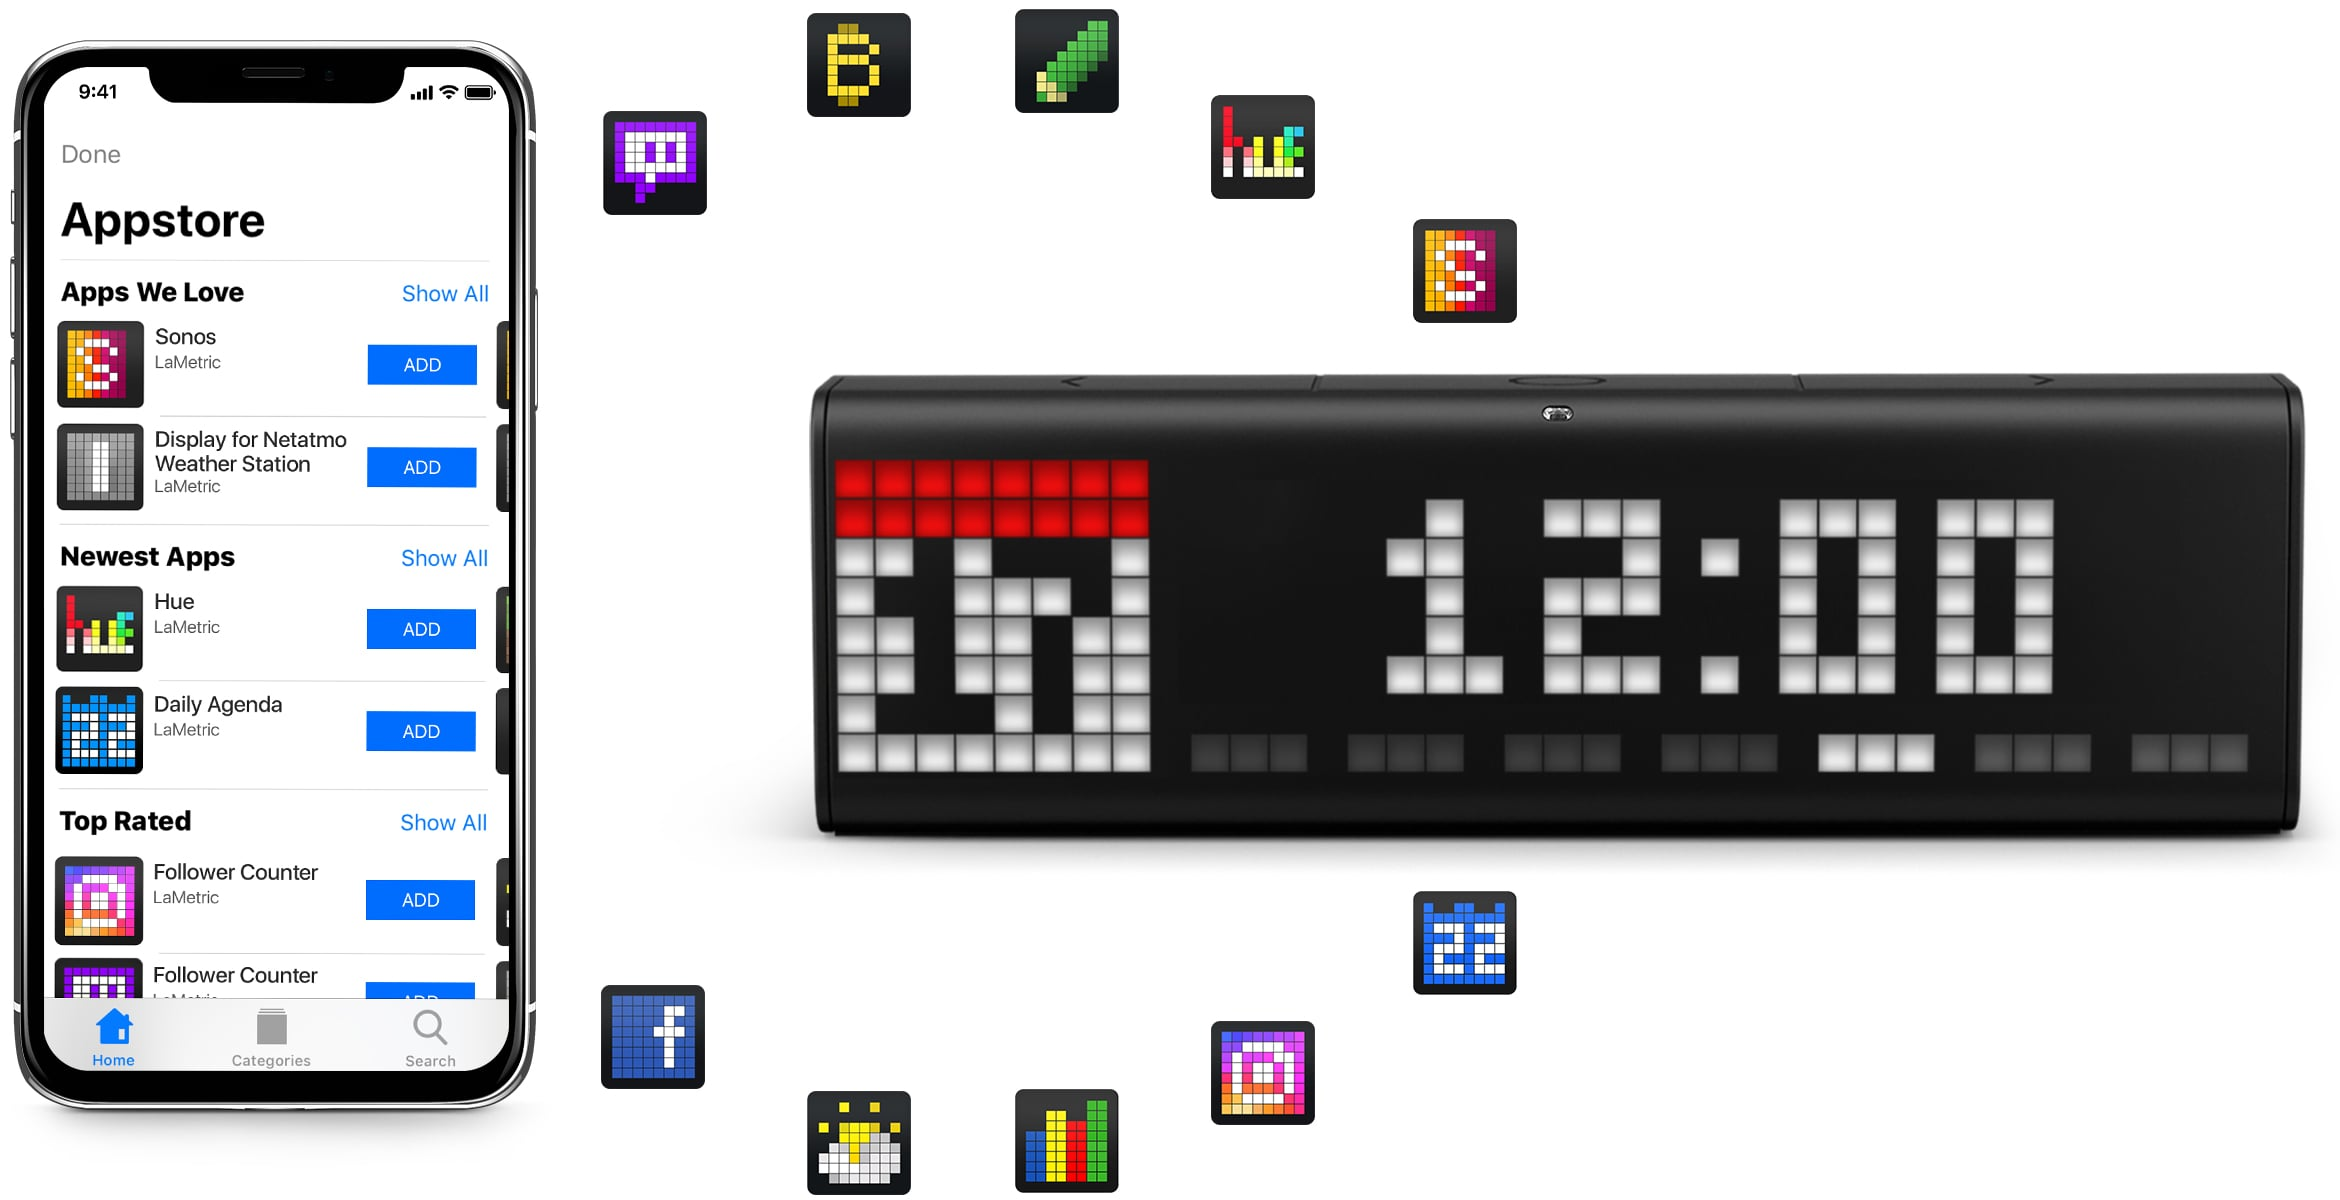 LaMetric Time digital clock displays time and the current date as a clock face and iPhone shows product appstore